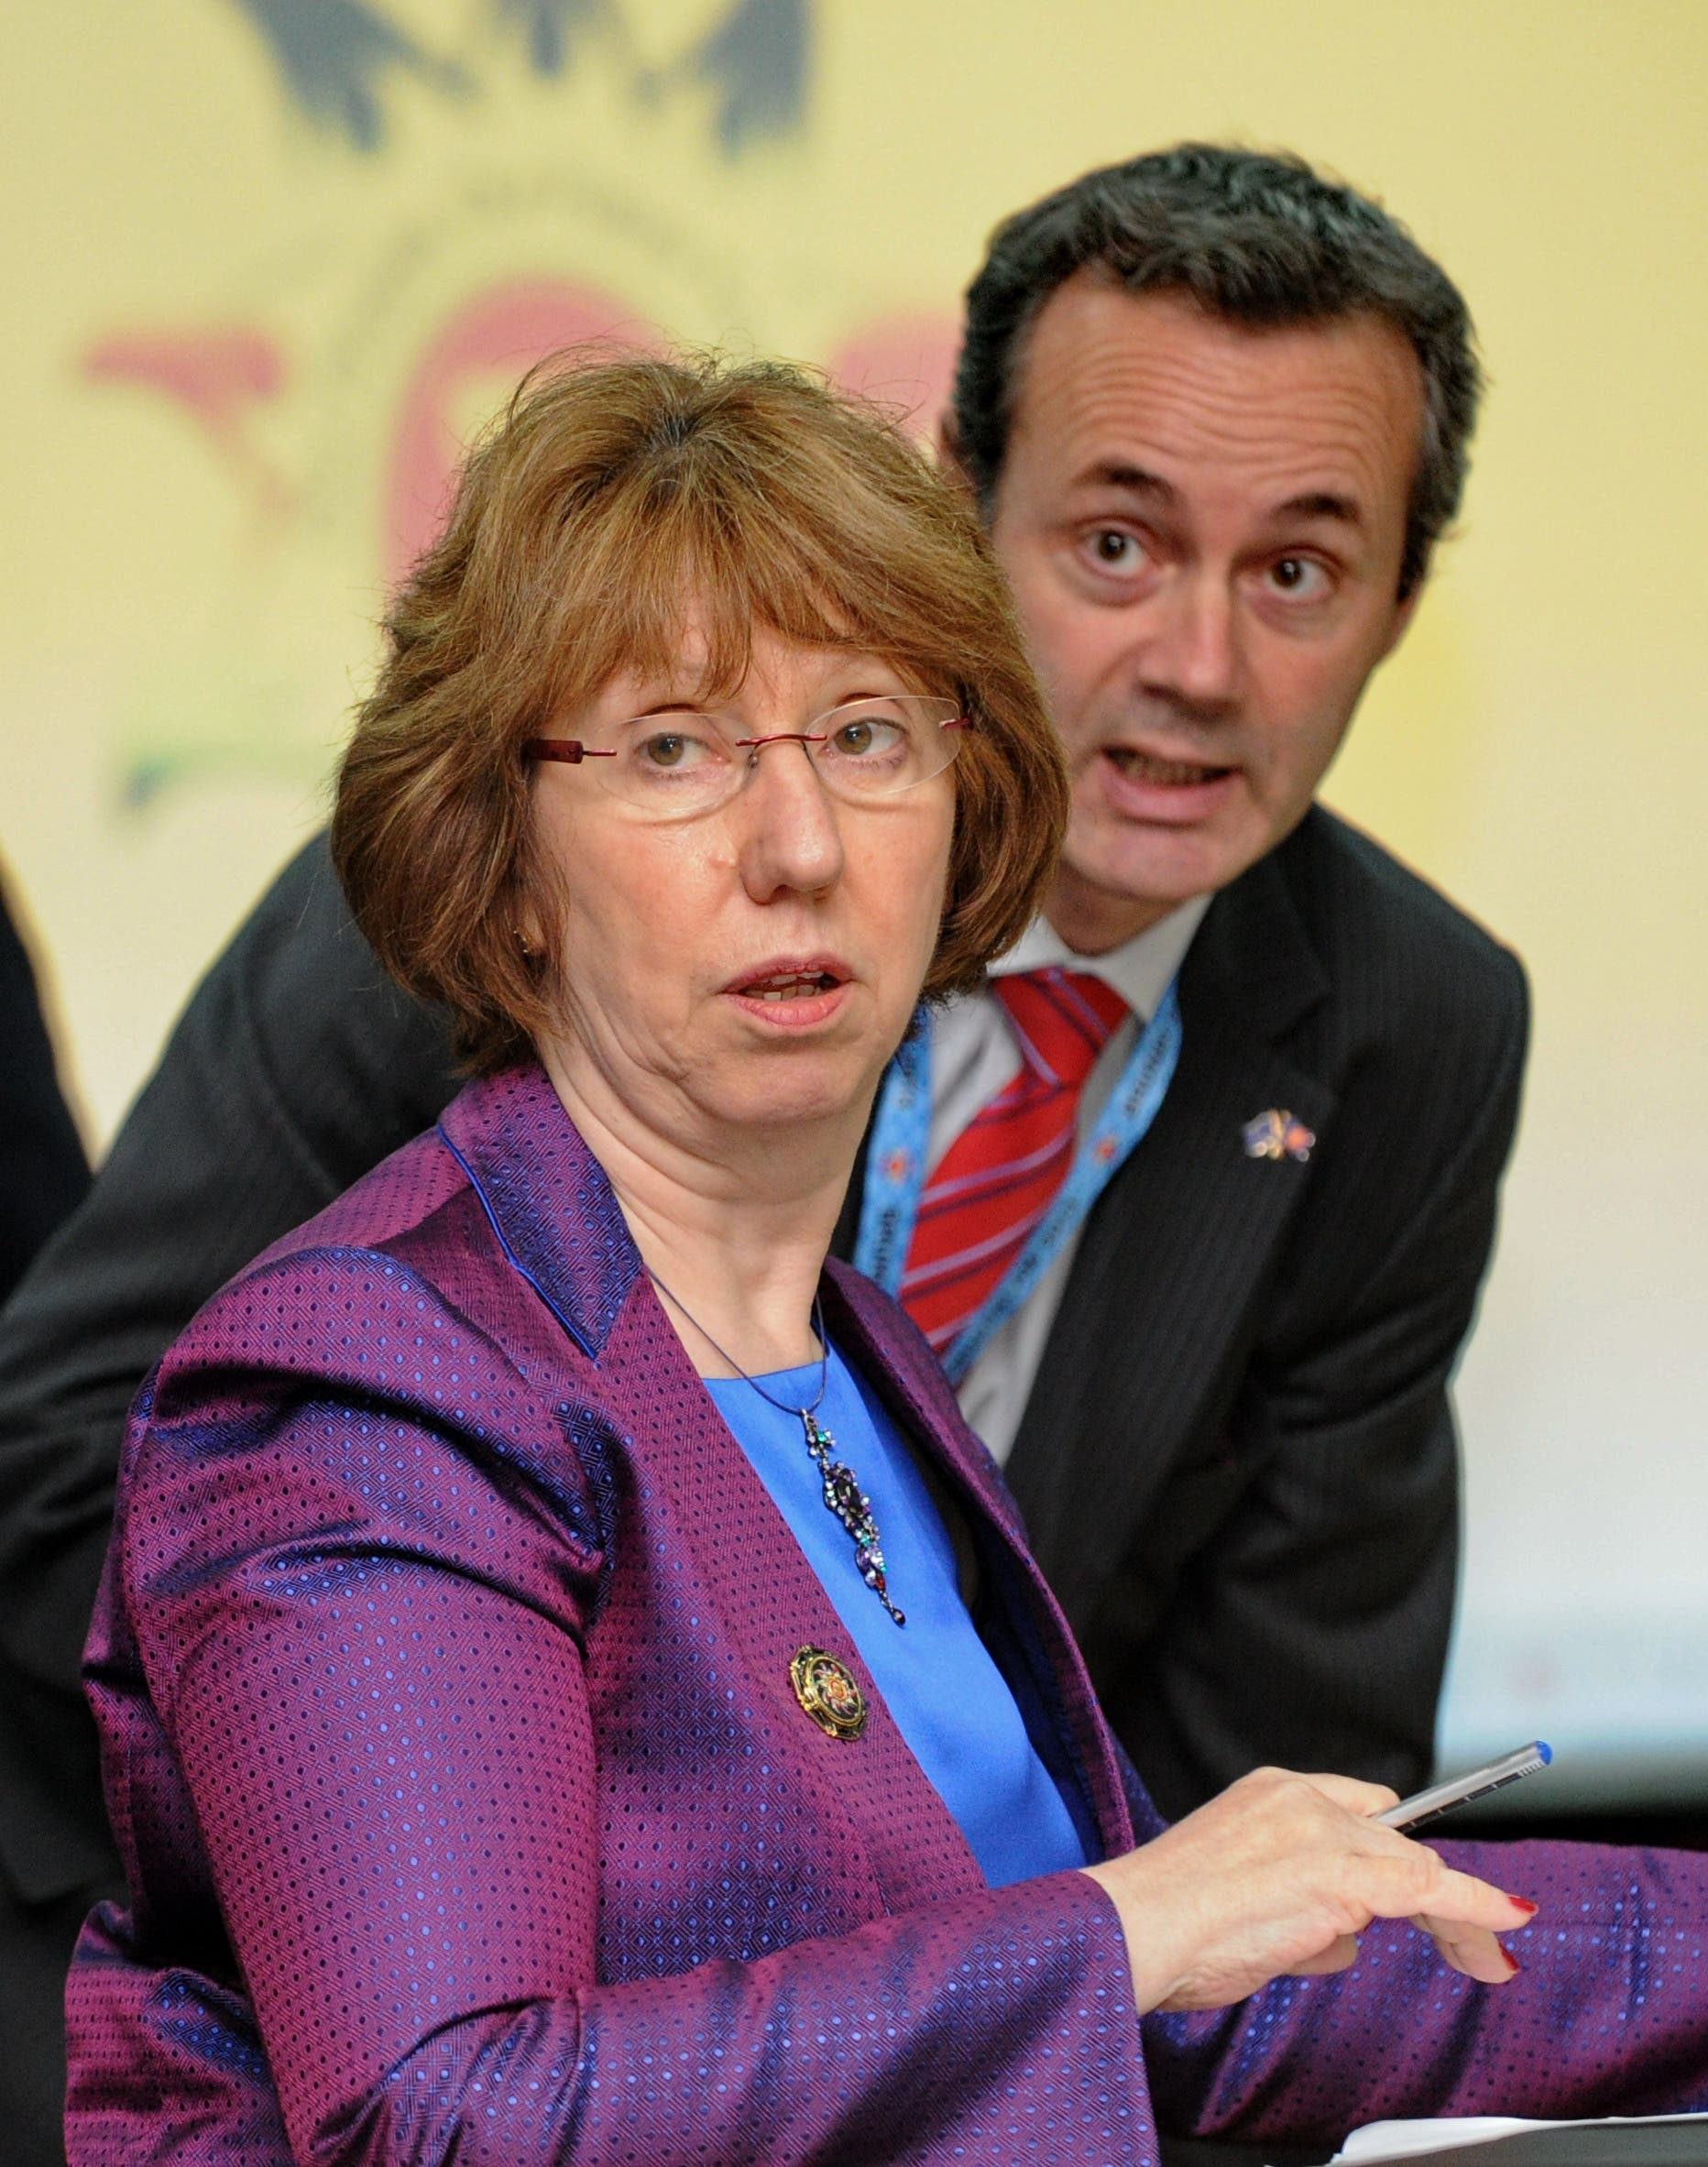 EU foreign policy chief Catherine Ashton and Bahraini FM Sheikh Khalid bin Ahmed al-Khalifa speak at the meeting on Syria. (AFP)